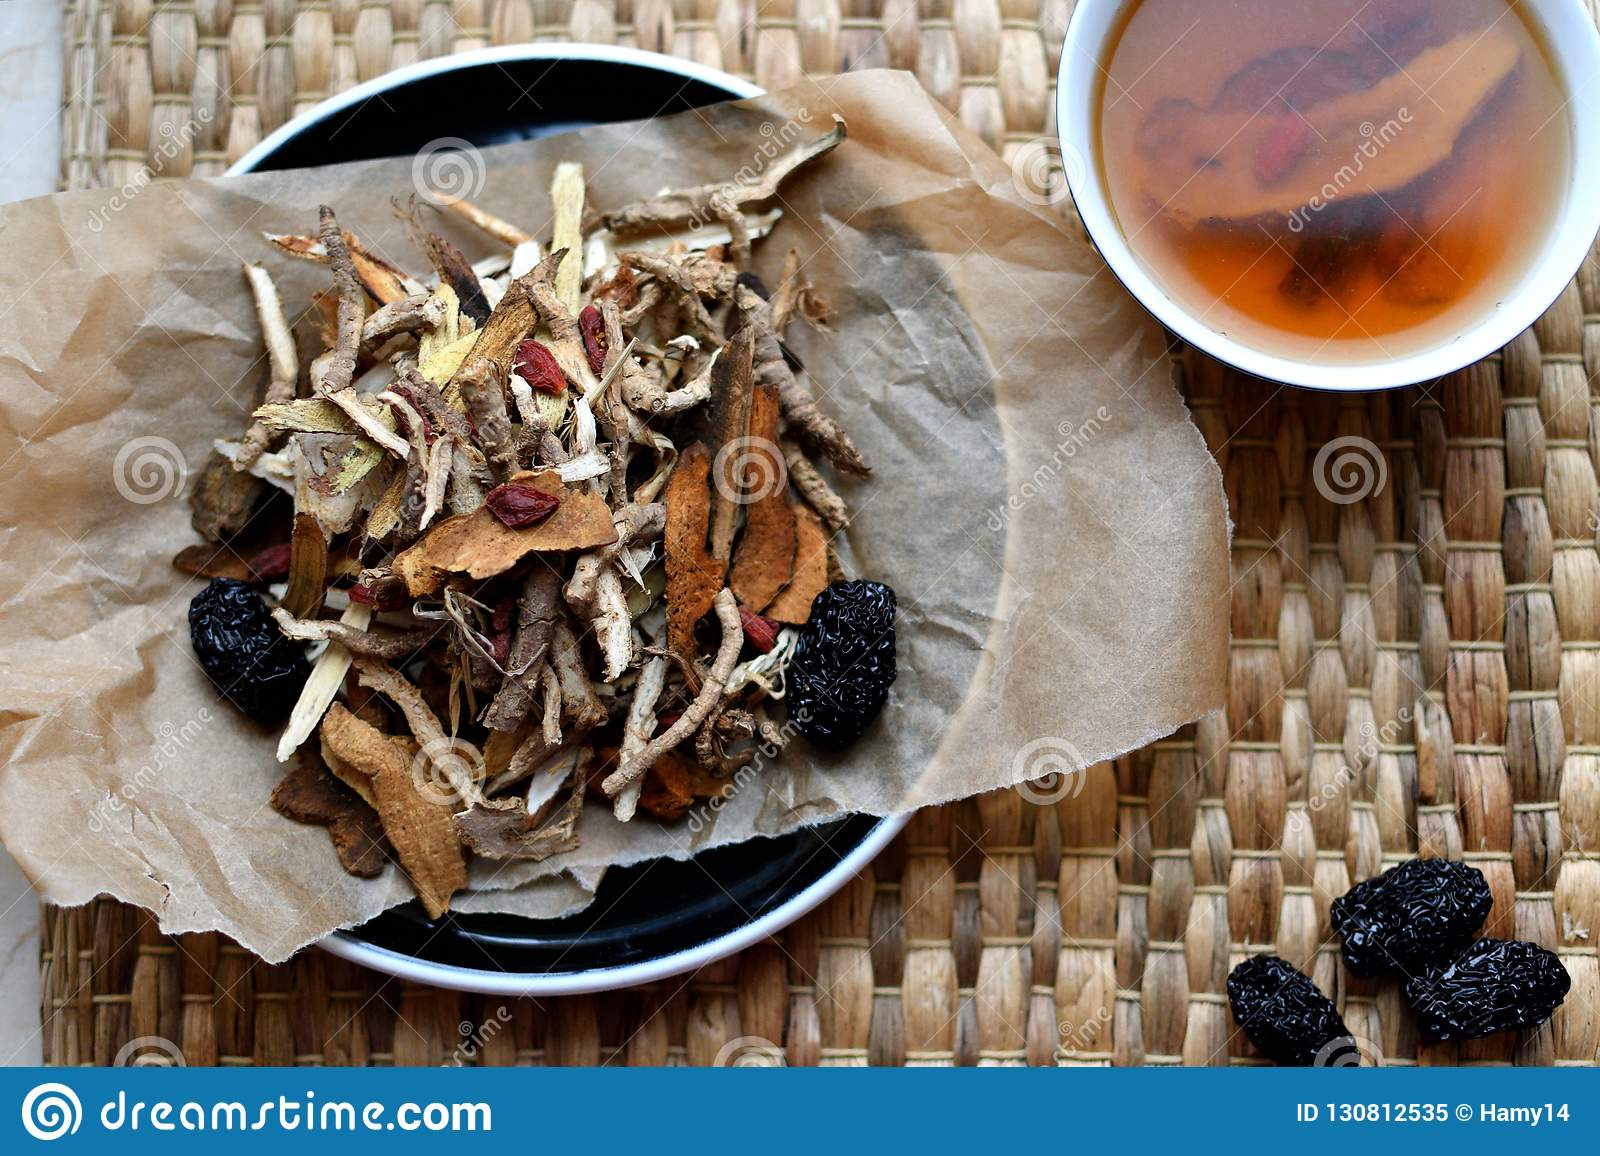 Chinese traditional medicine script. Herbal tea with jujubes, goji berries, gingseng roots and others on parchment paper on neutr